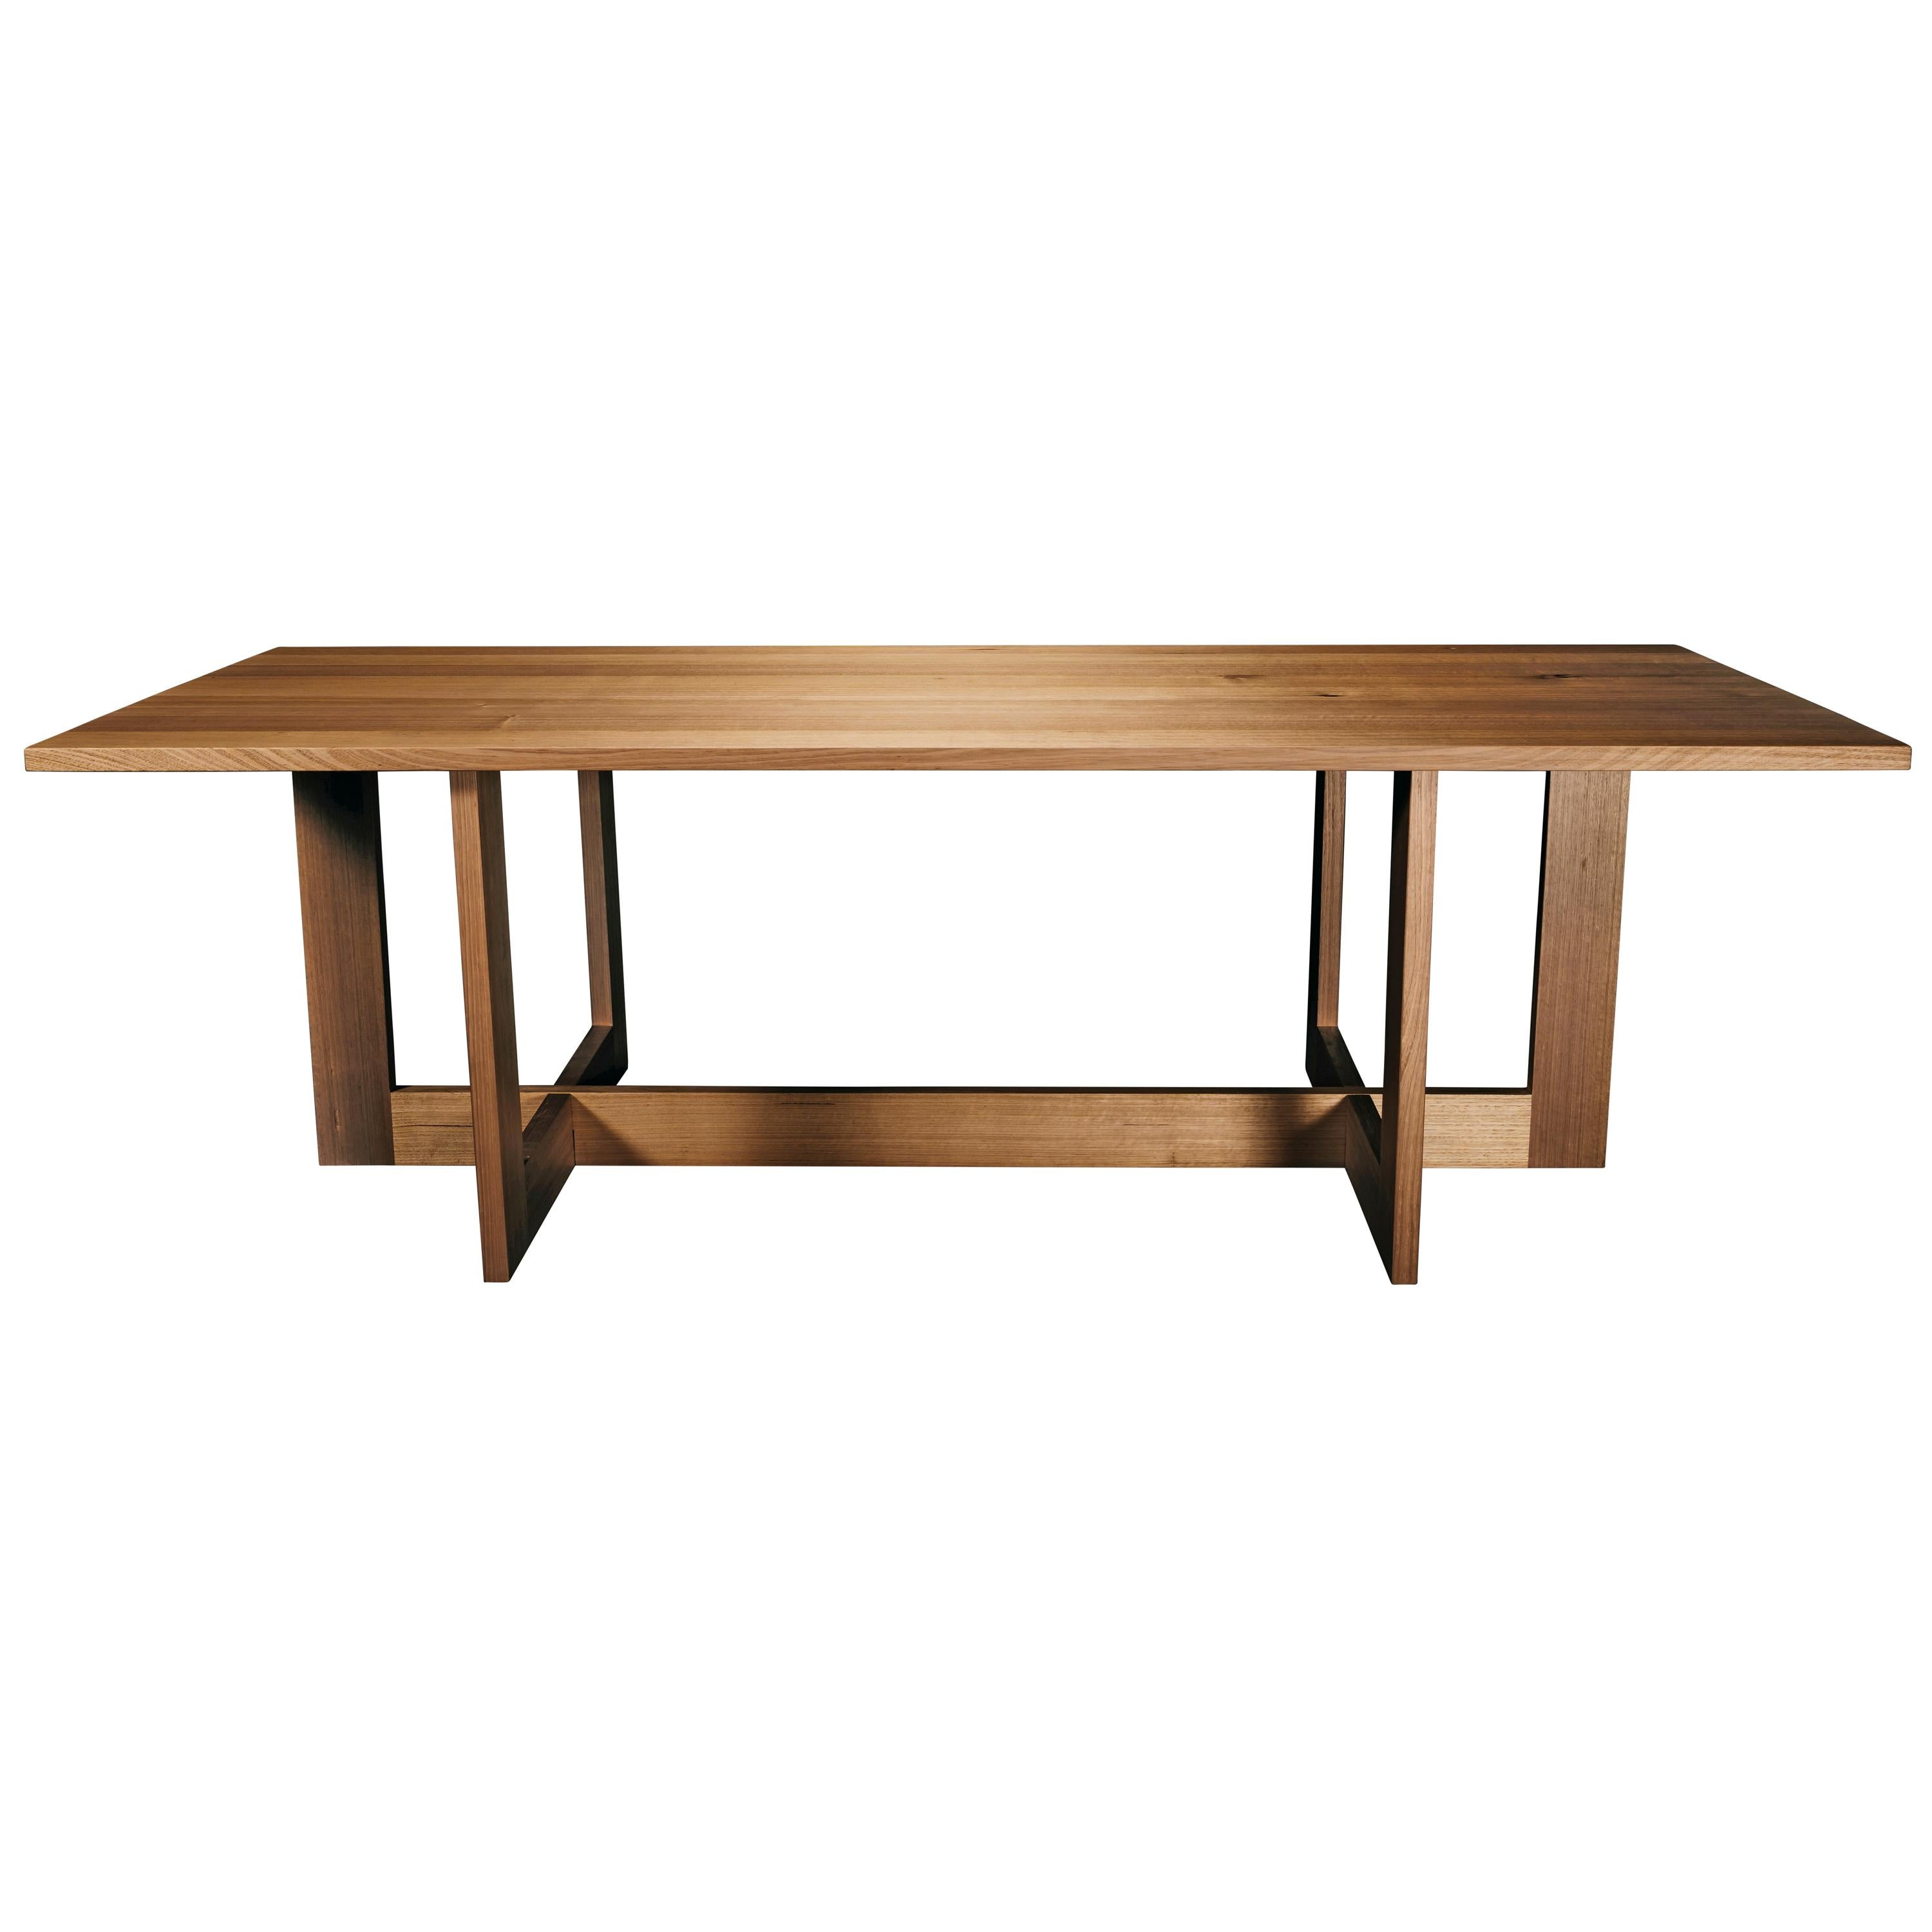 Pyrenees Dining Table, Handcrafted in Victorian Ash Hardwood